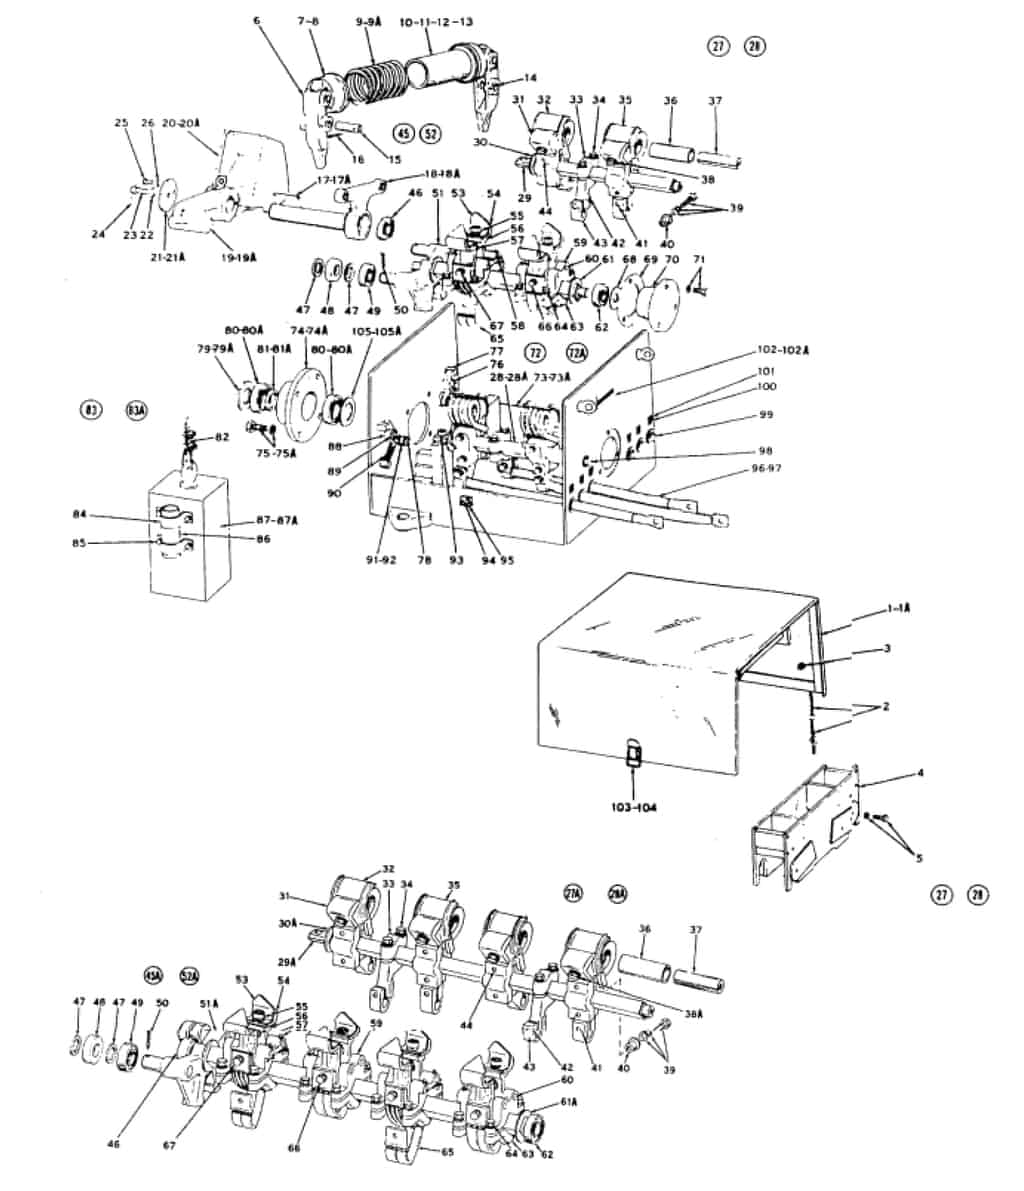 NO. 30 YOUNGSTOWN LIMIT SWITCH TYPE DG SERIES A